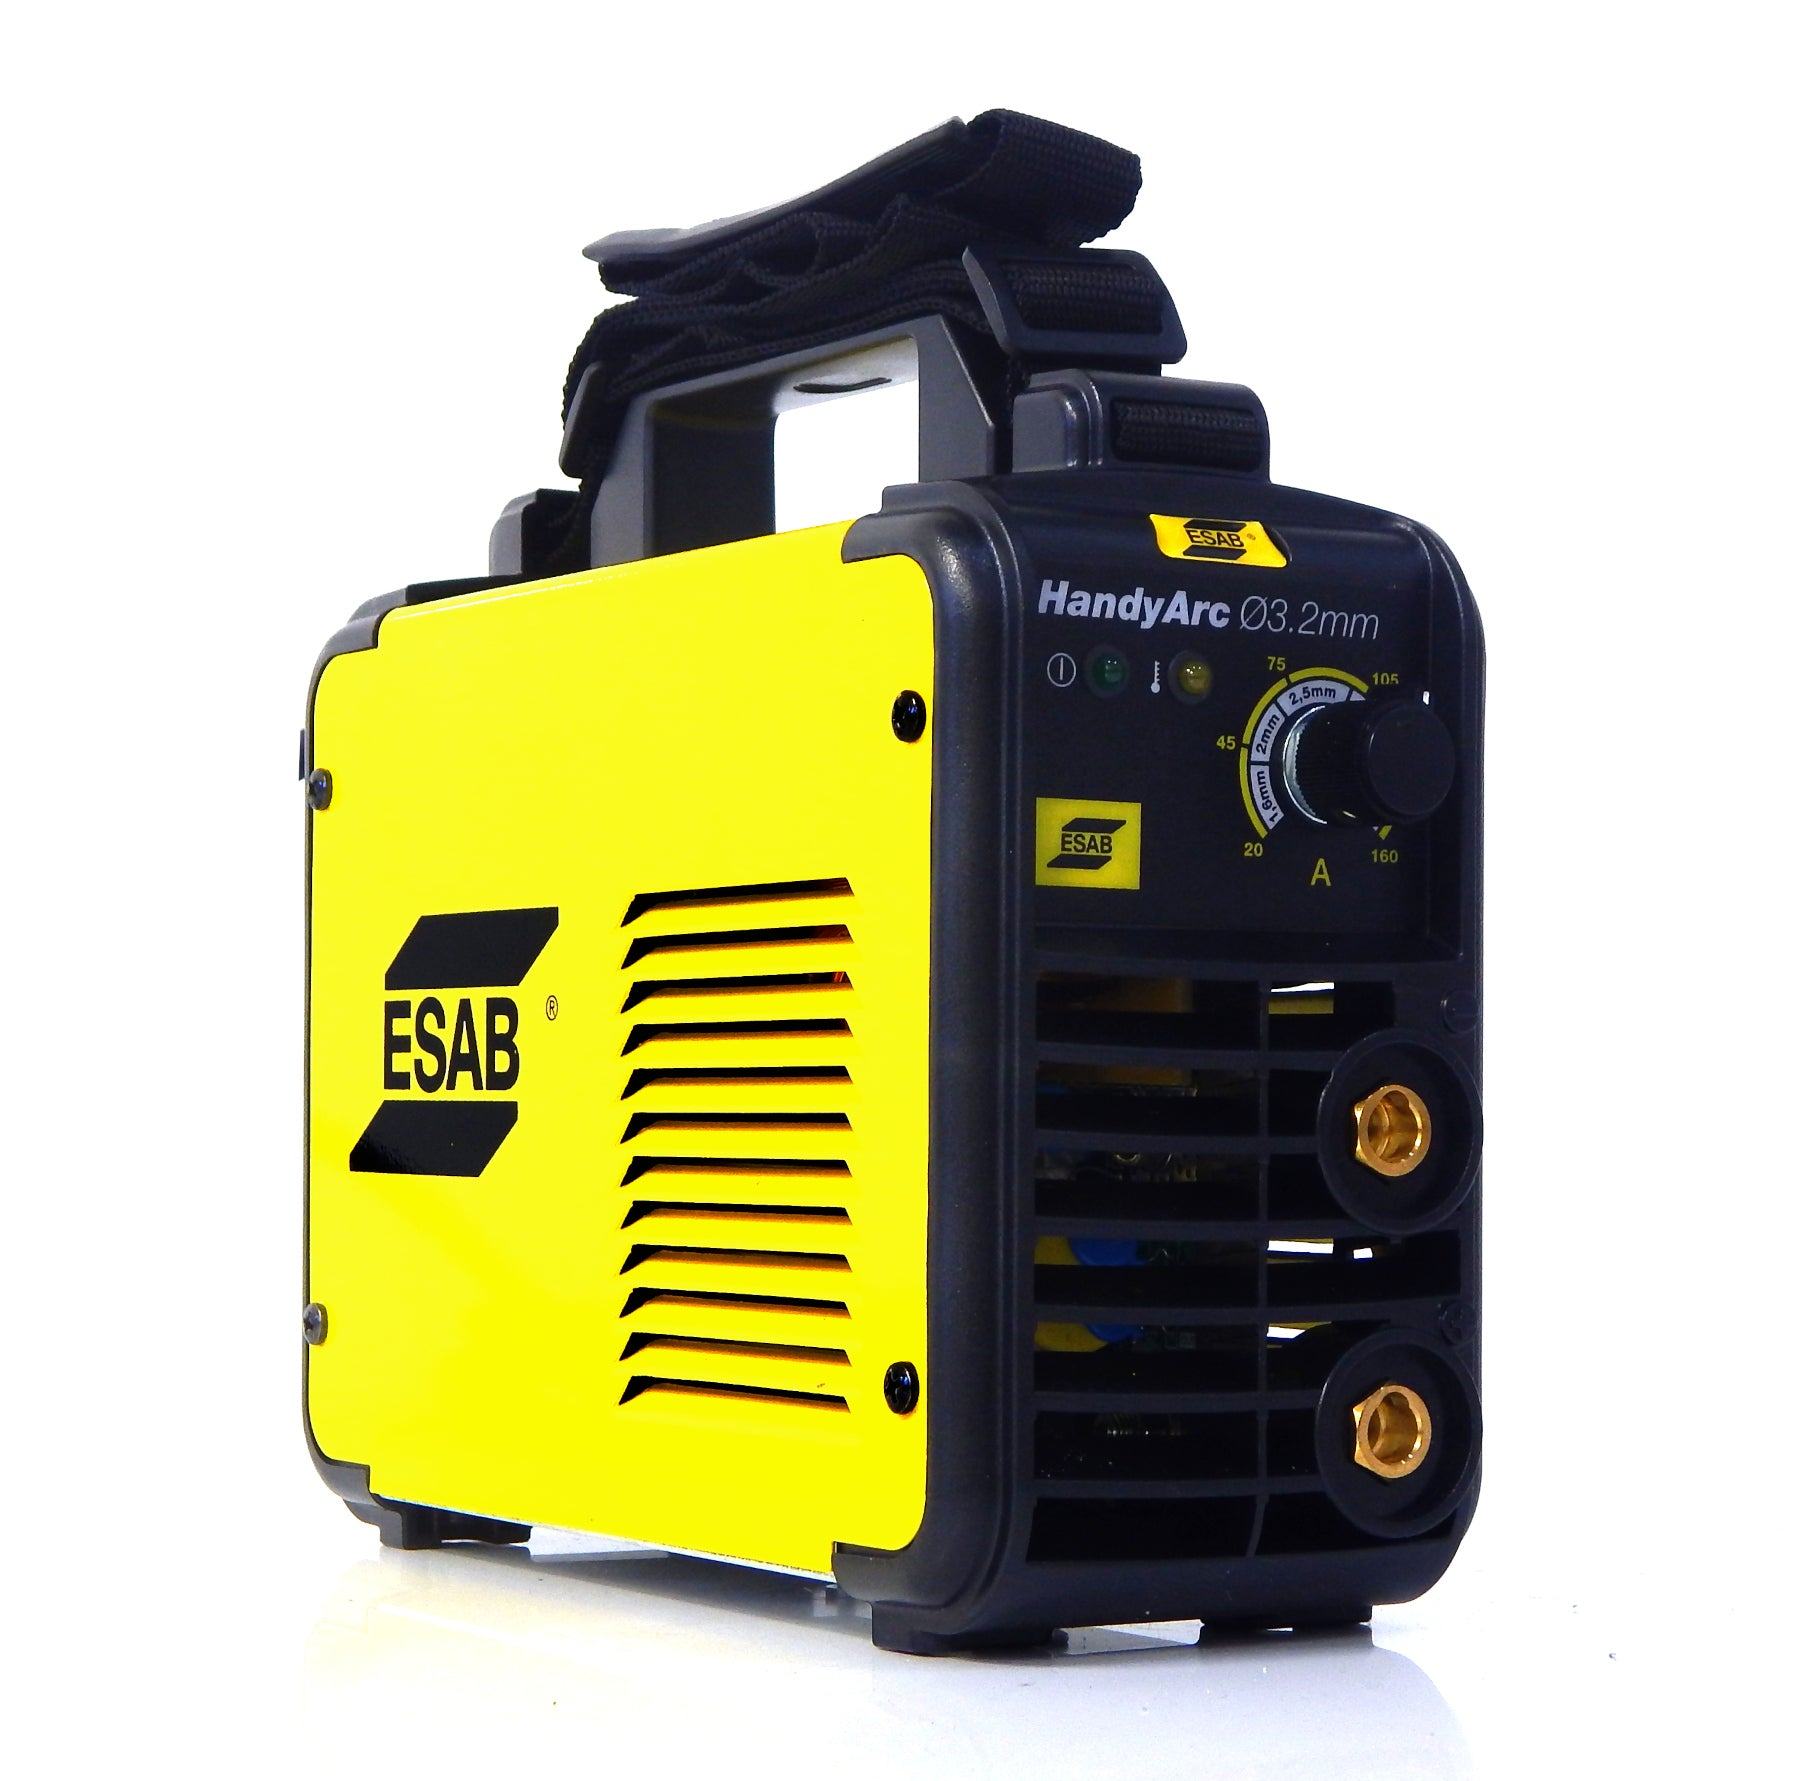 ESAB Handyarc 3.2mm - 160 Amp Inverter Welding Machine. Very Compact and Robust Outer Shell